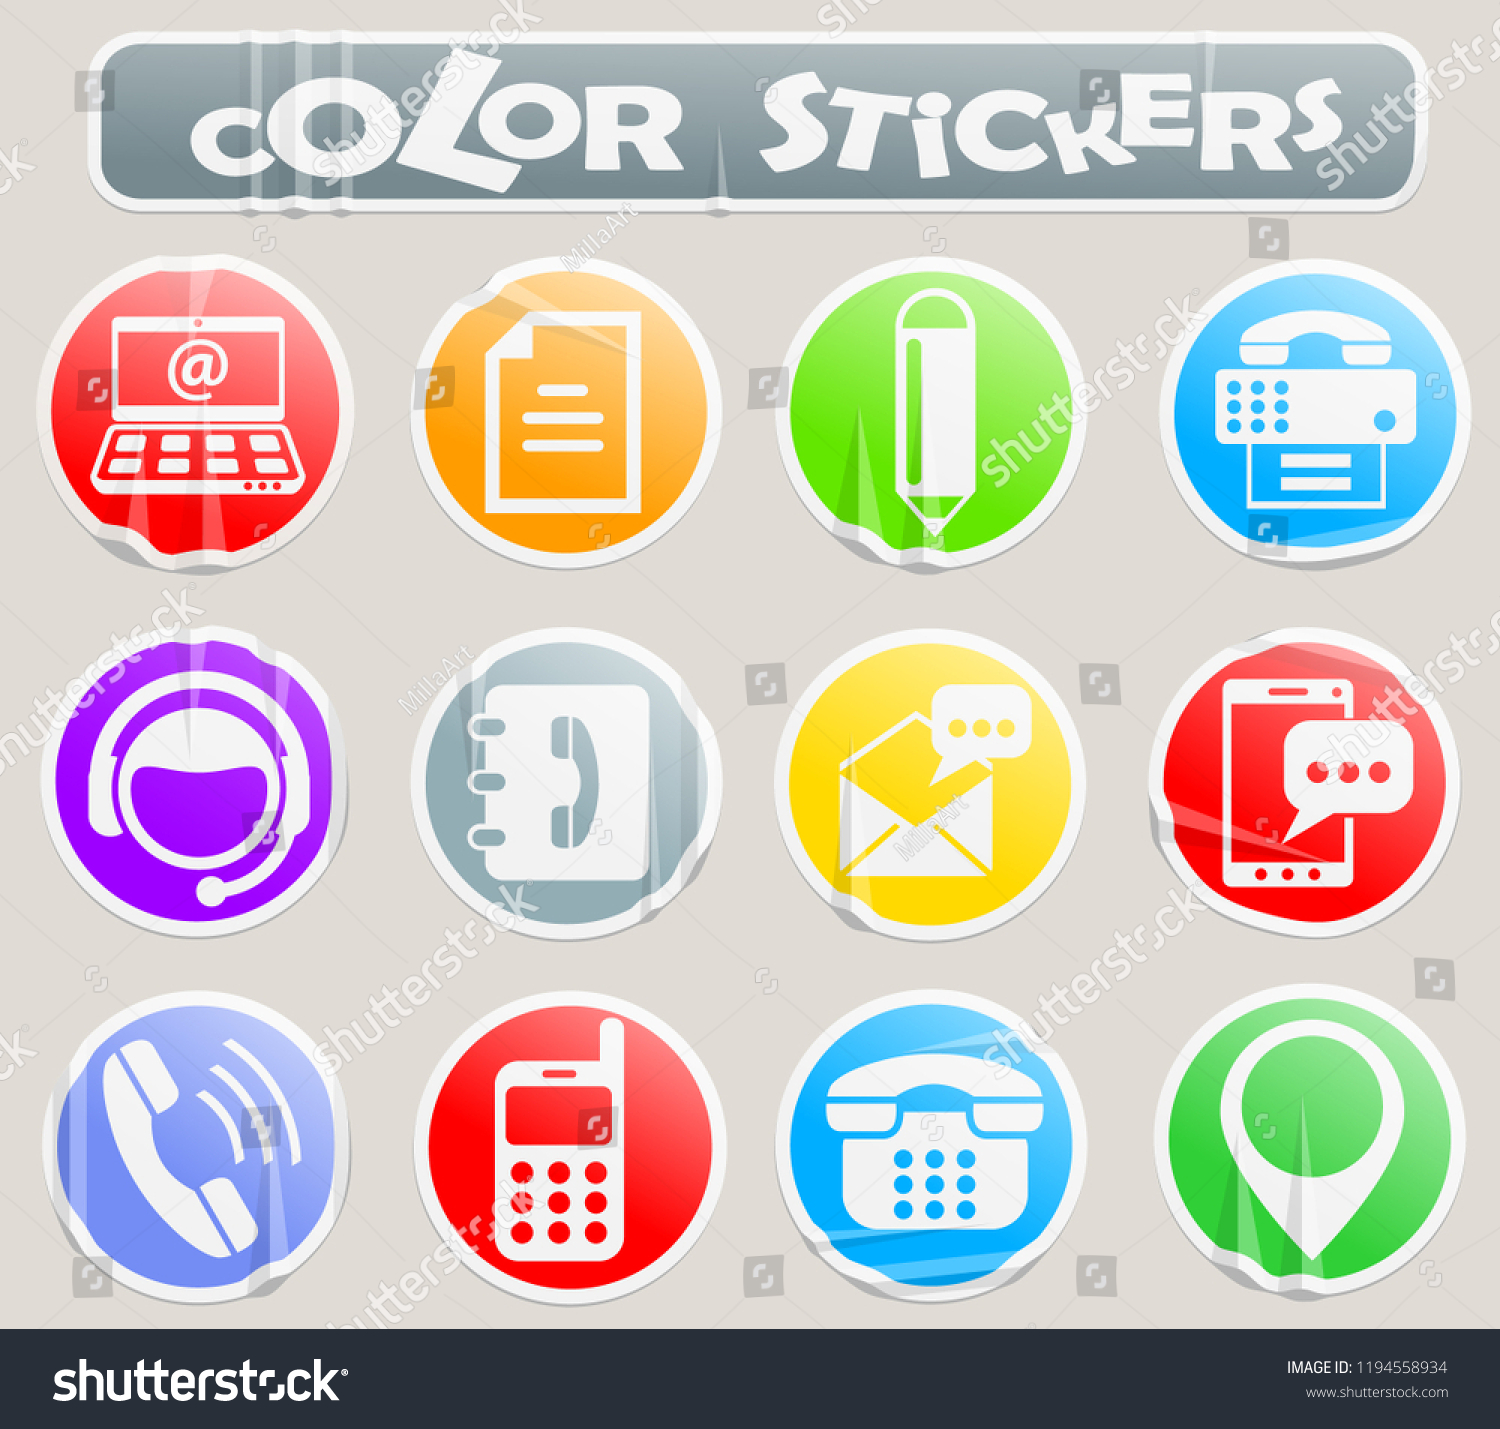 Contact us color stickers